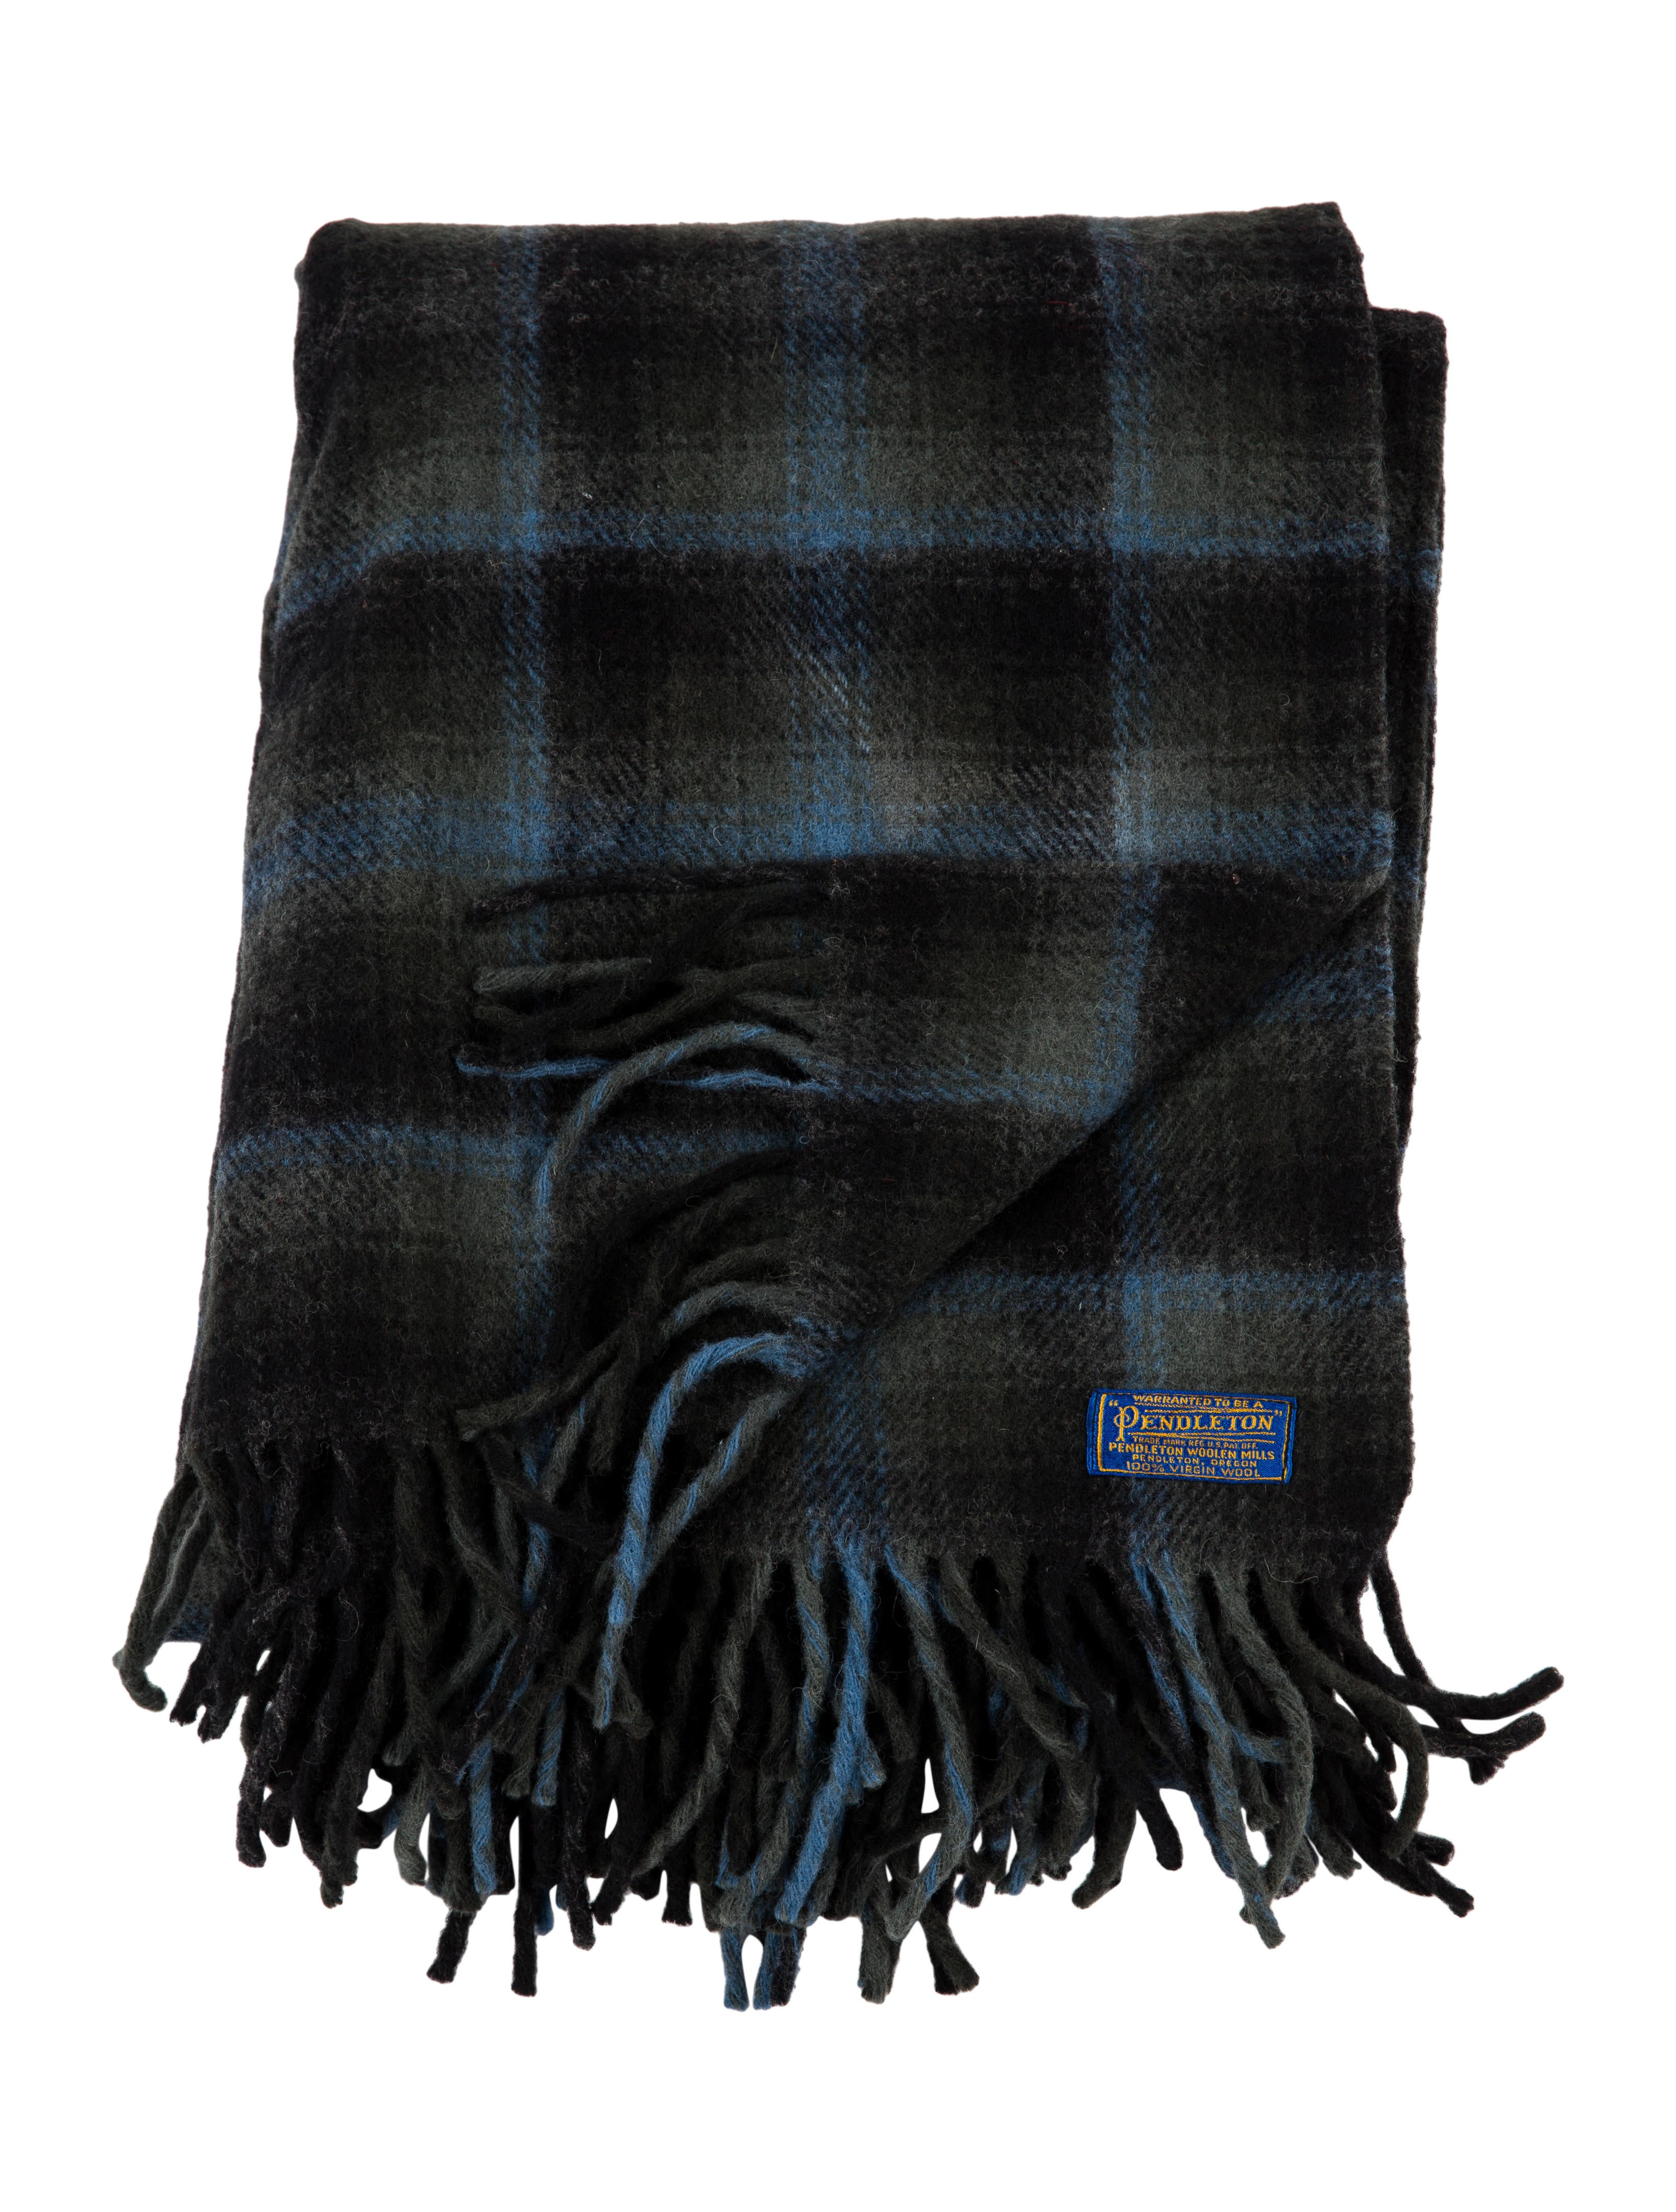 Pendleton Wool Throw Blanket - Pillows And Throws - PNDDL20025 The RealReal